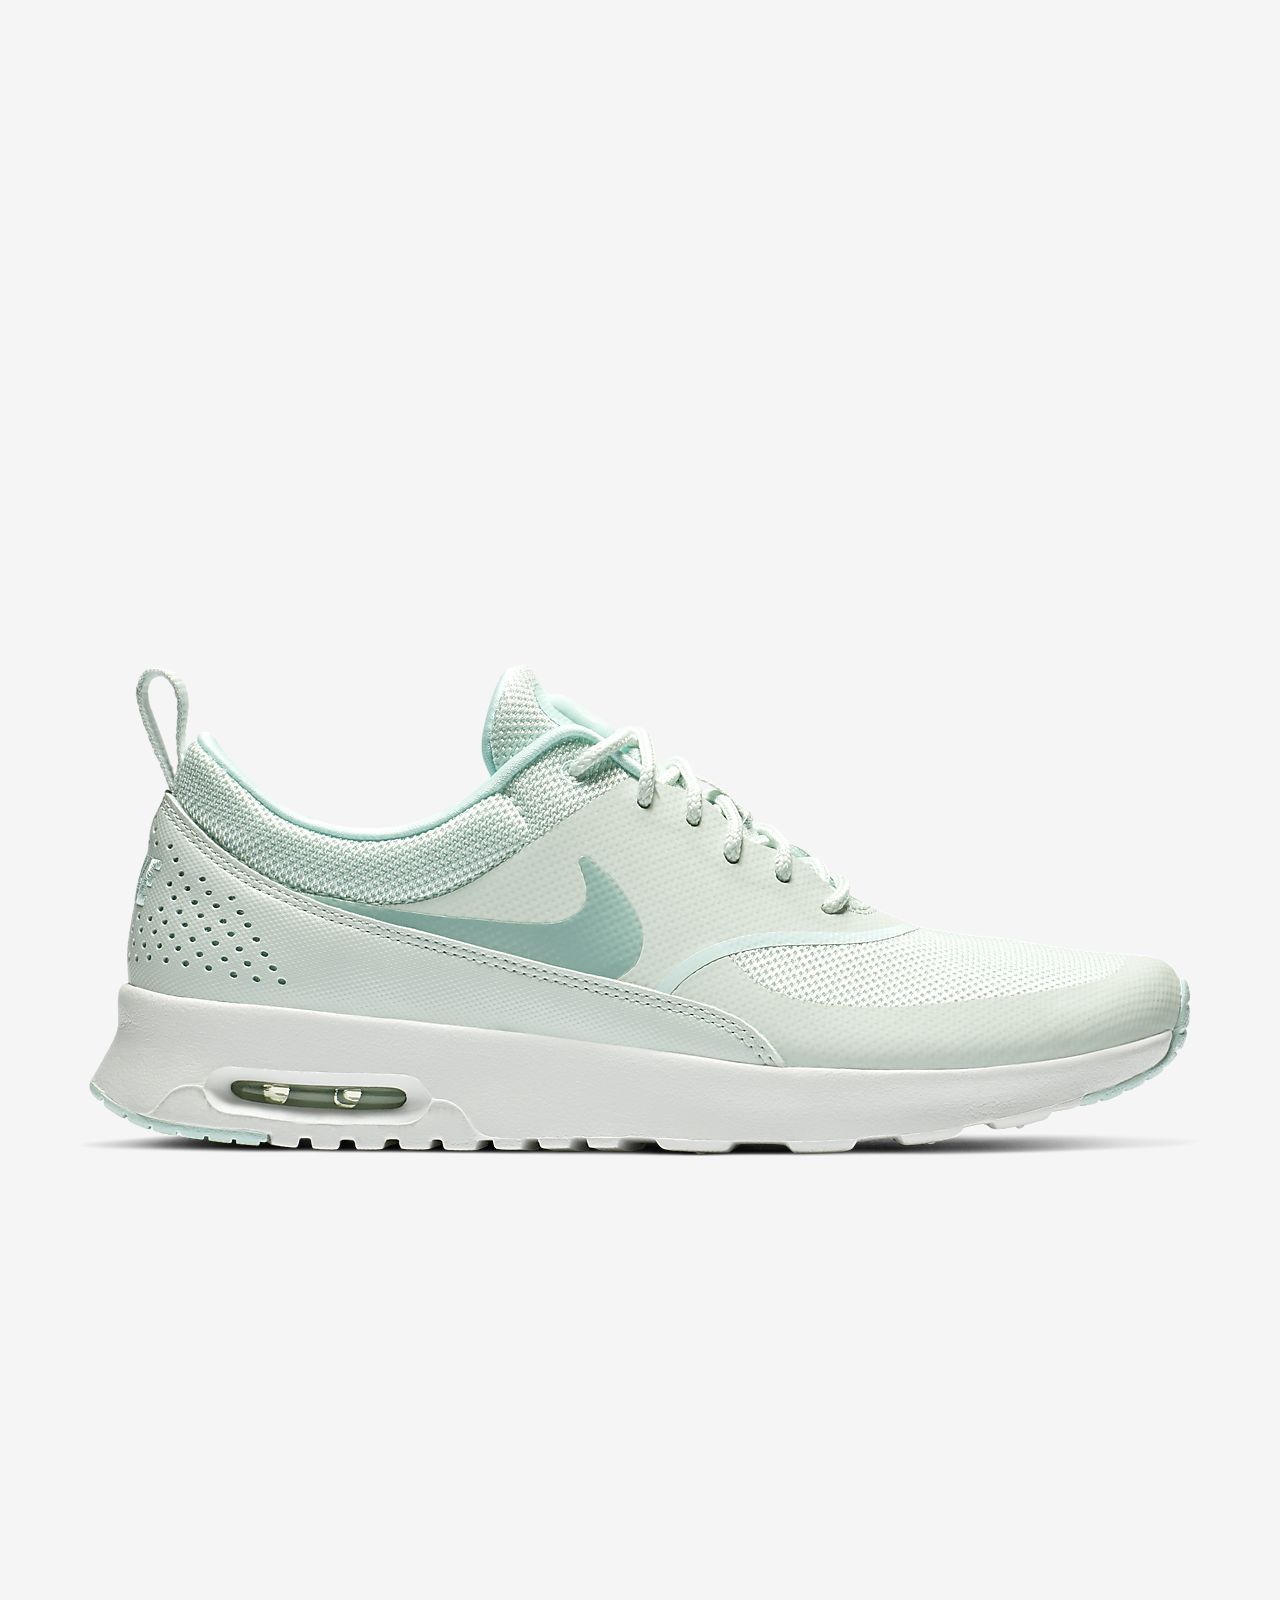 sports shoes d201e f81ed ... Chaussure Nike Air Max Thea pour Femme